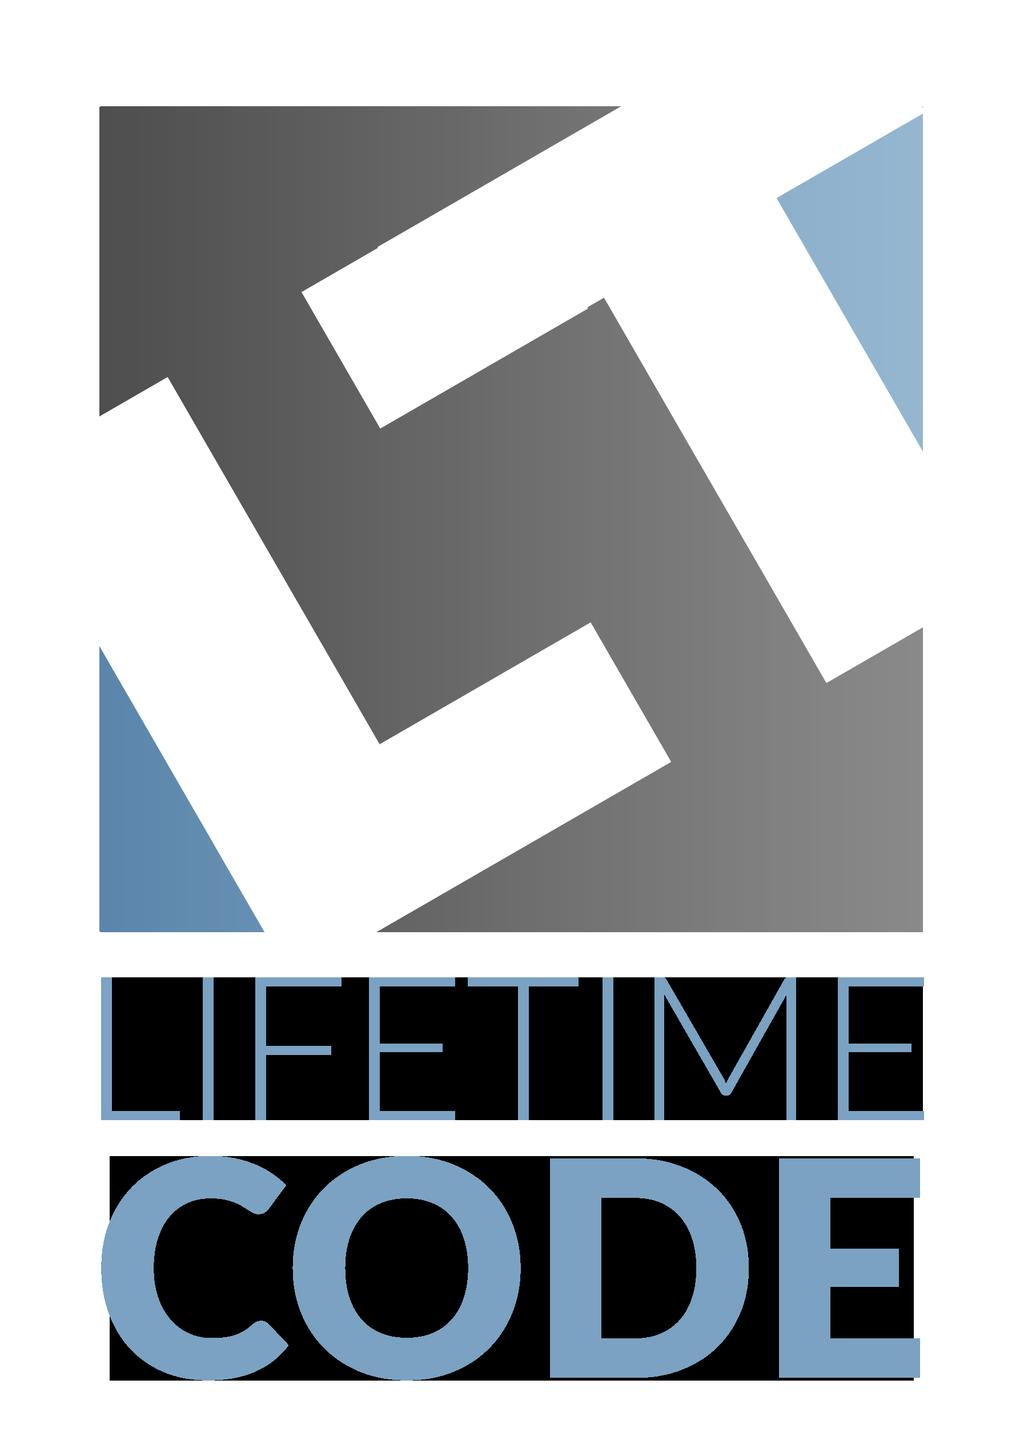 2018 LifetimeCode Company Profile Software solutions provider specialized in mobile applications development.